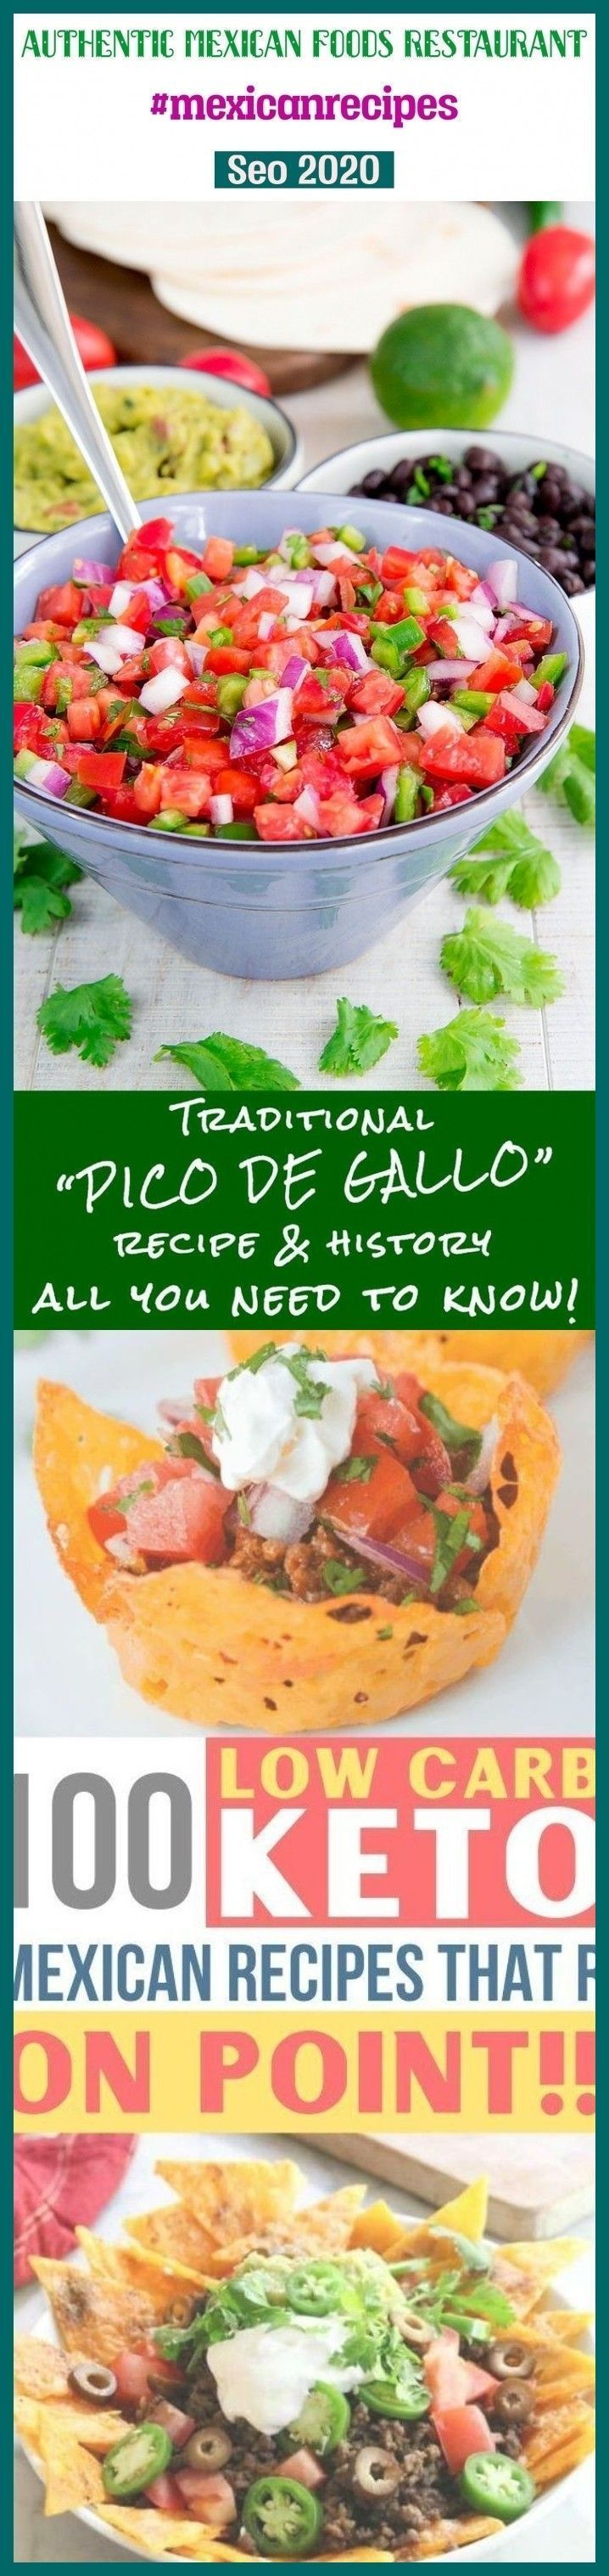 Authentic mexican foods restaurant #mexicanrecipes #pinterestseo #seo #food. aut... - #authentic #foods #mexican #mexicanrecipes #pinterestseo #restaurant - #HispanicKitchen #authenticmexicansalsa